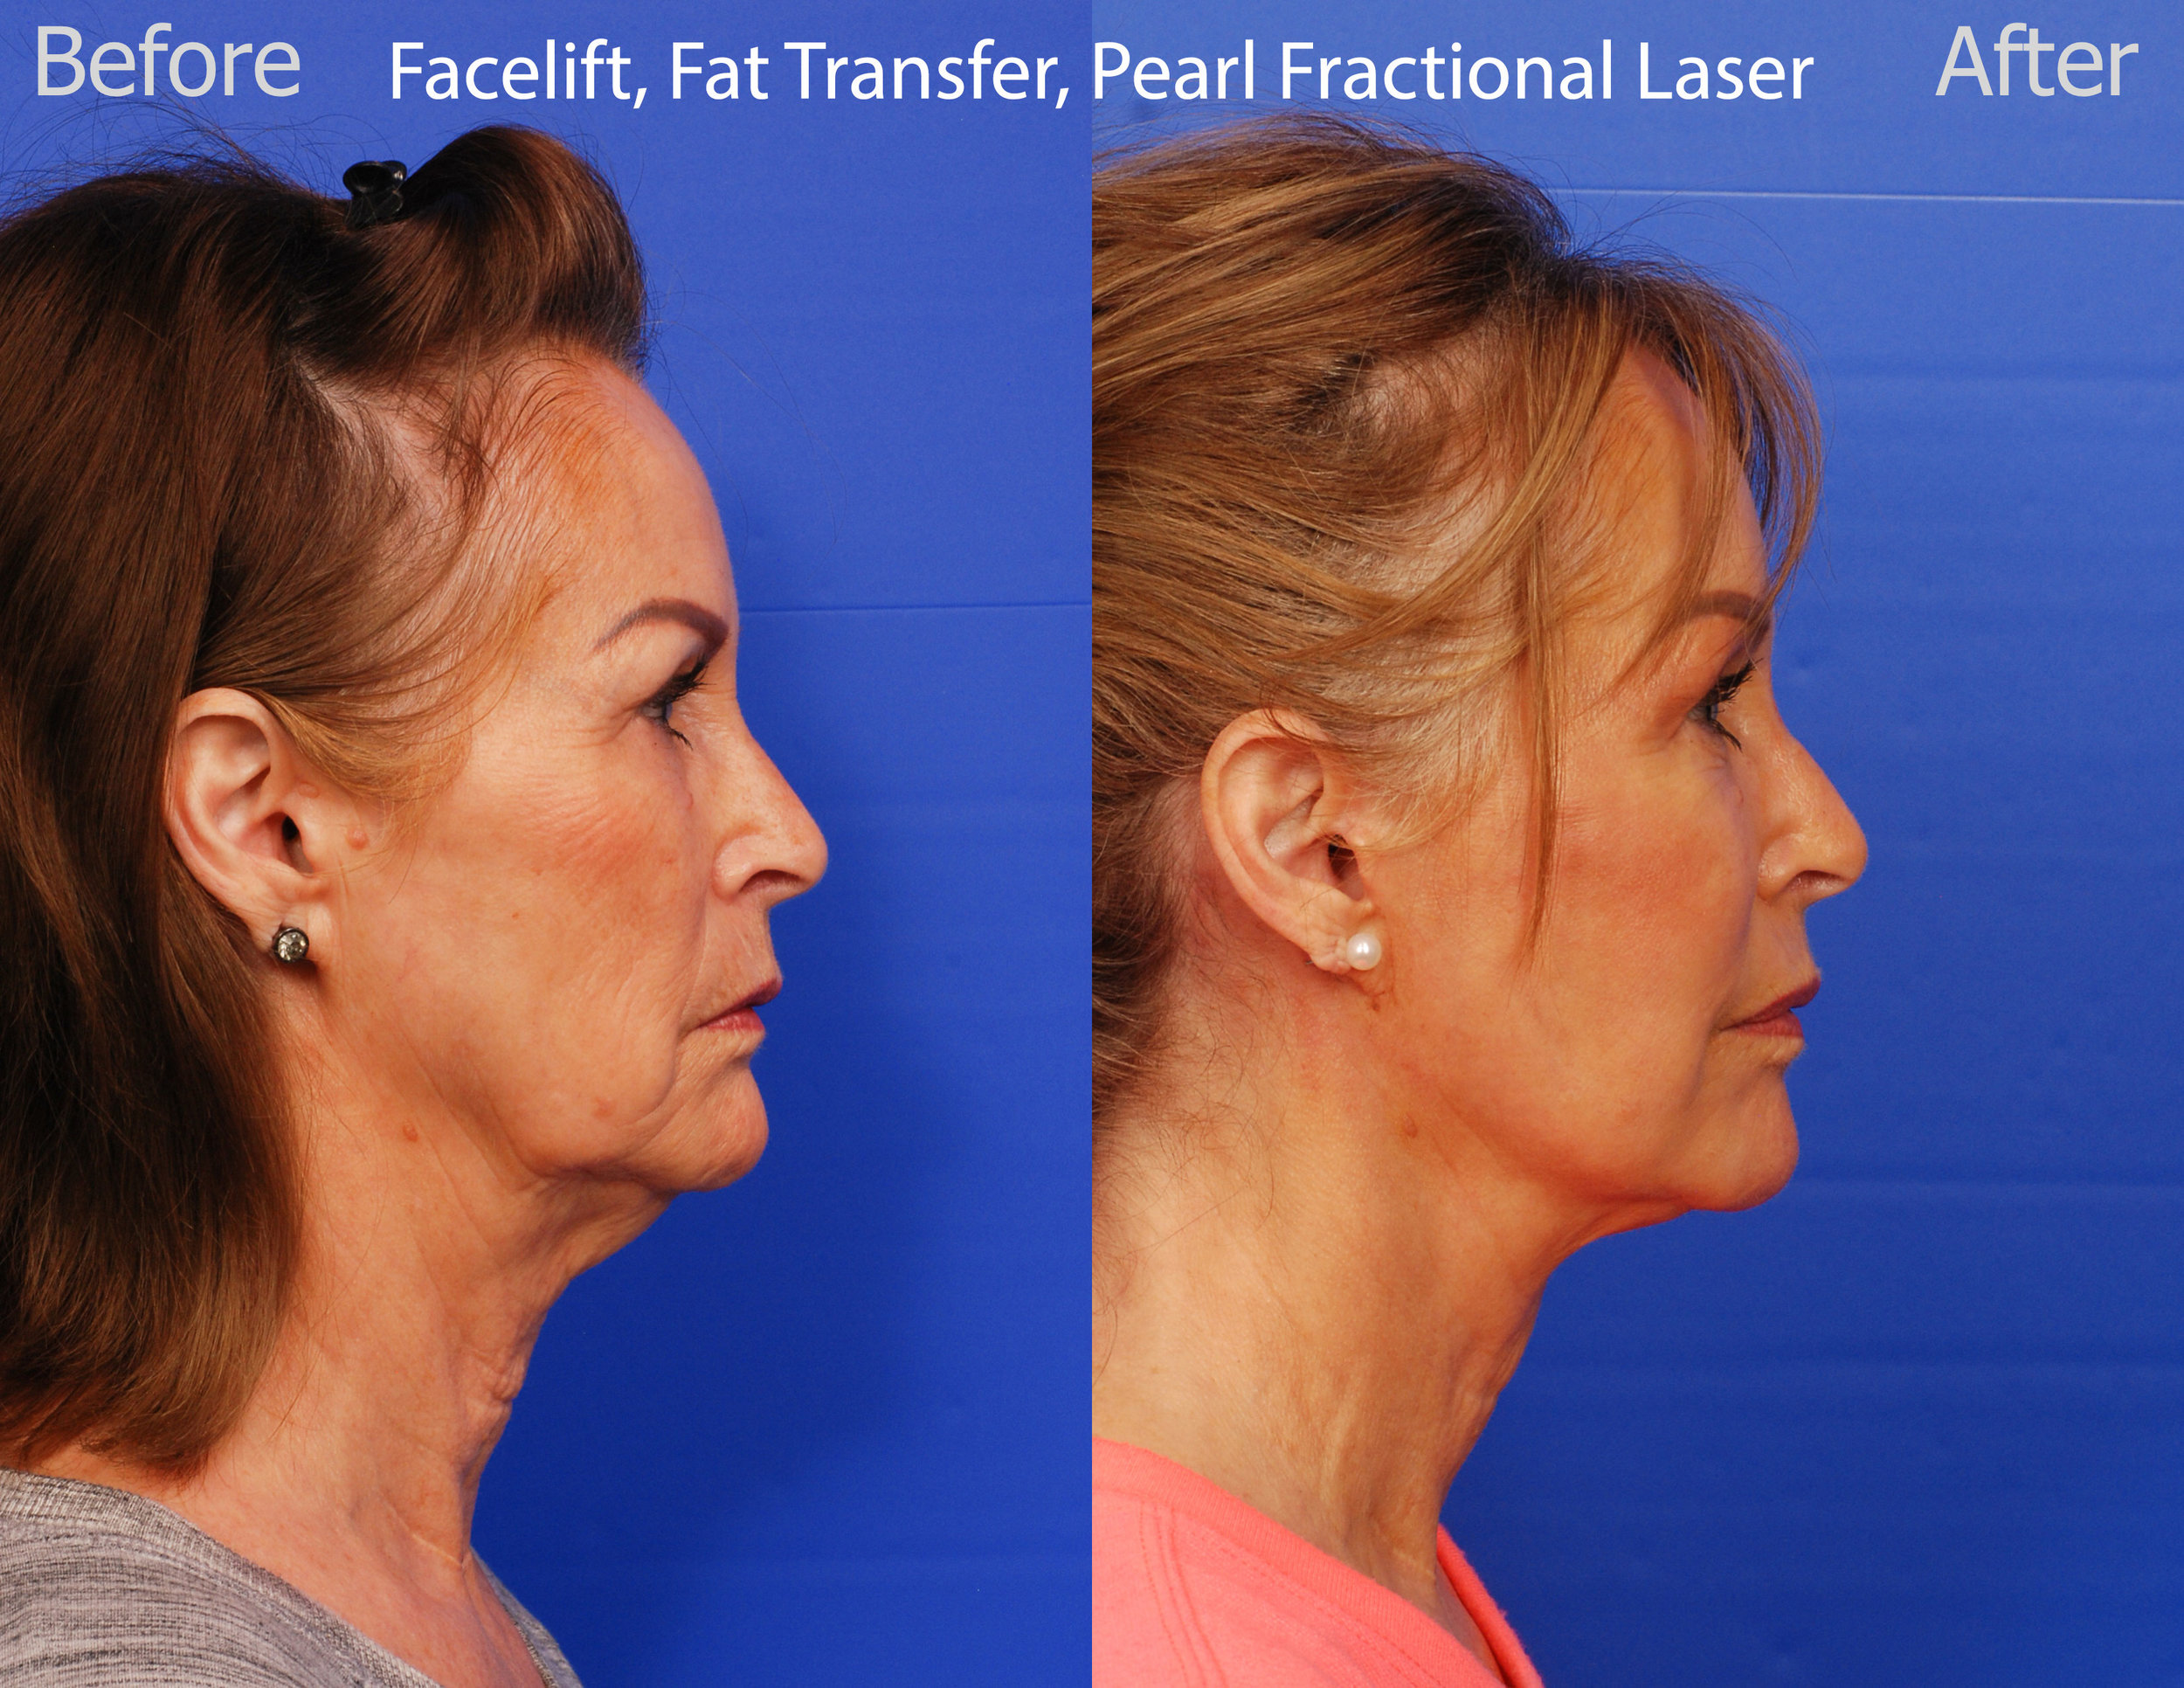 Facelift, Pearl Fractional Laser and Fat Transfer - San Diego